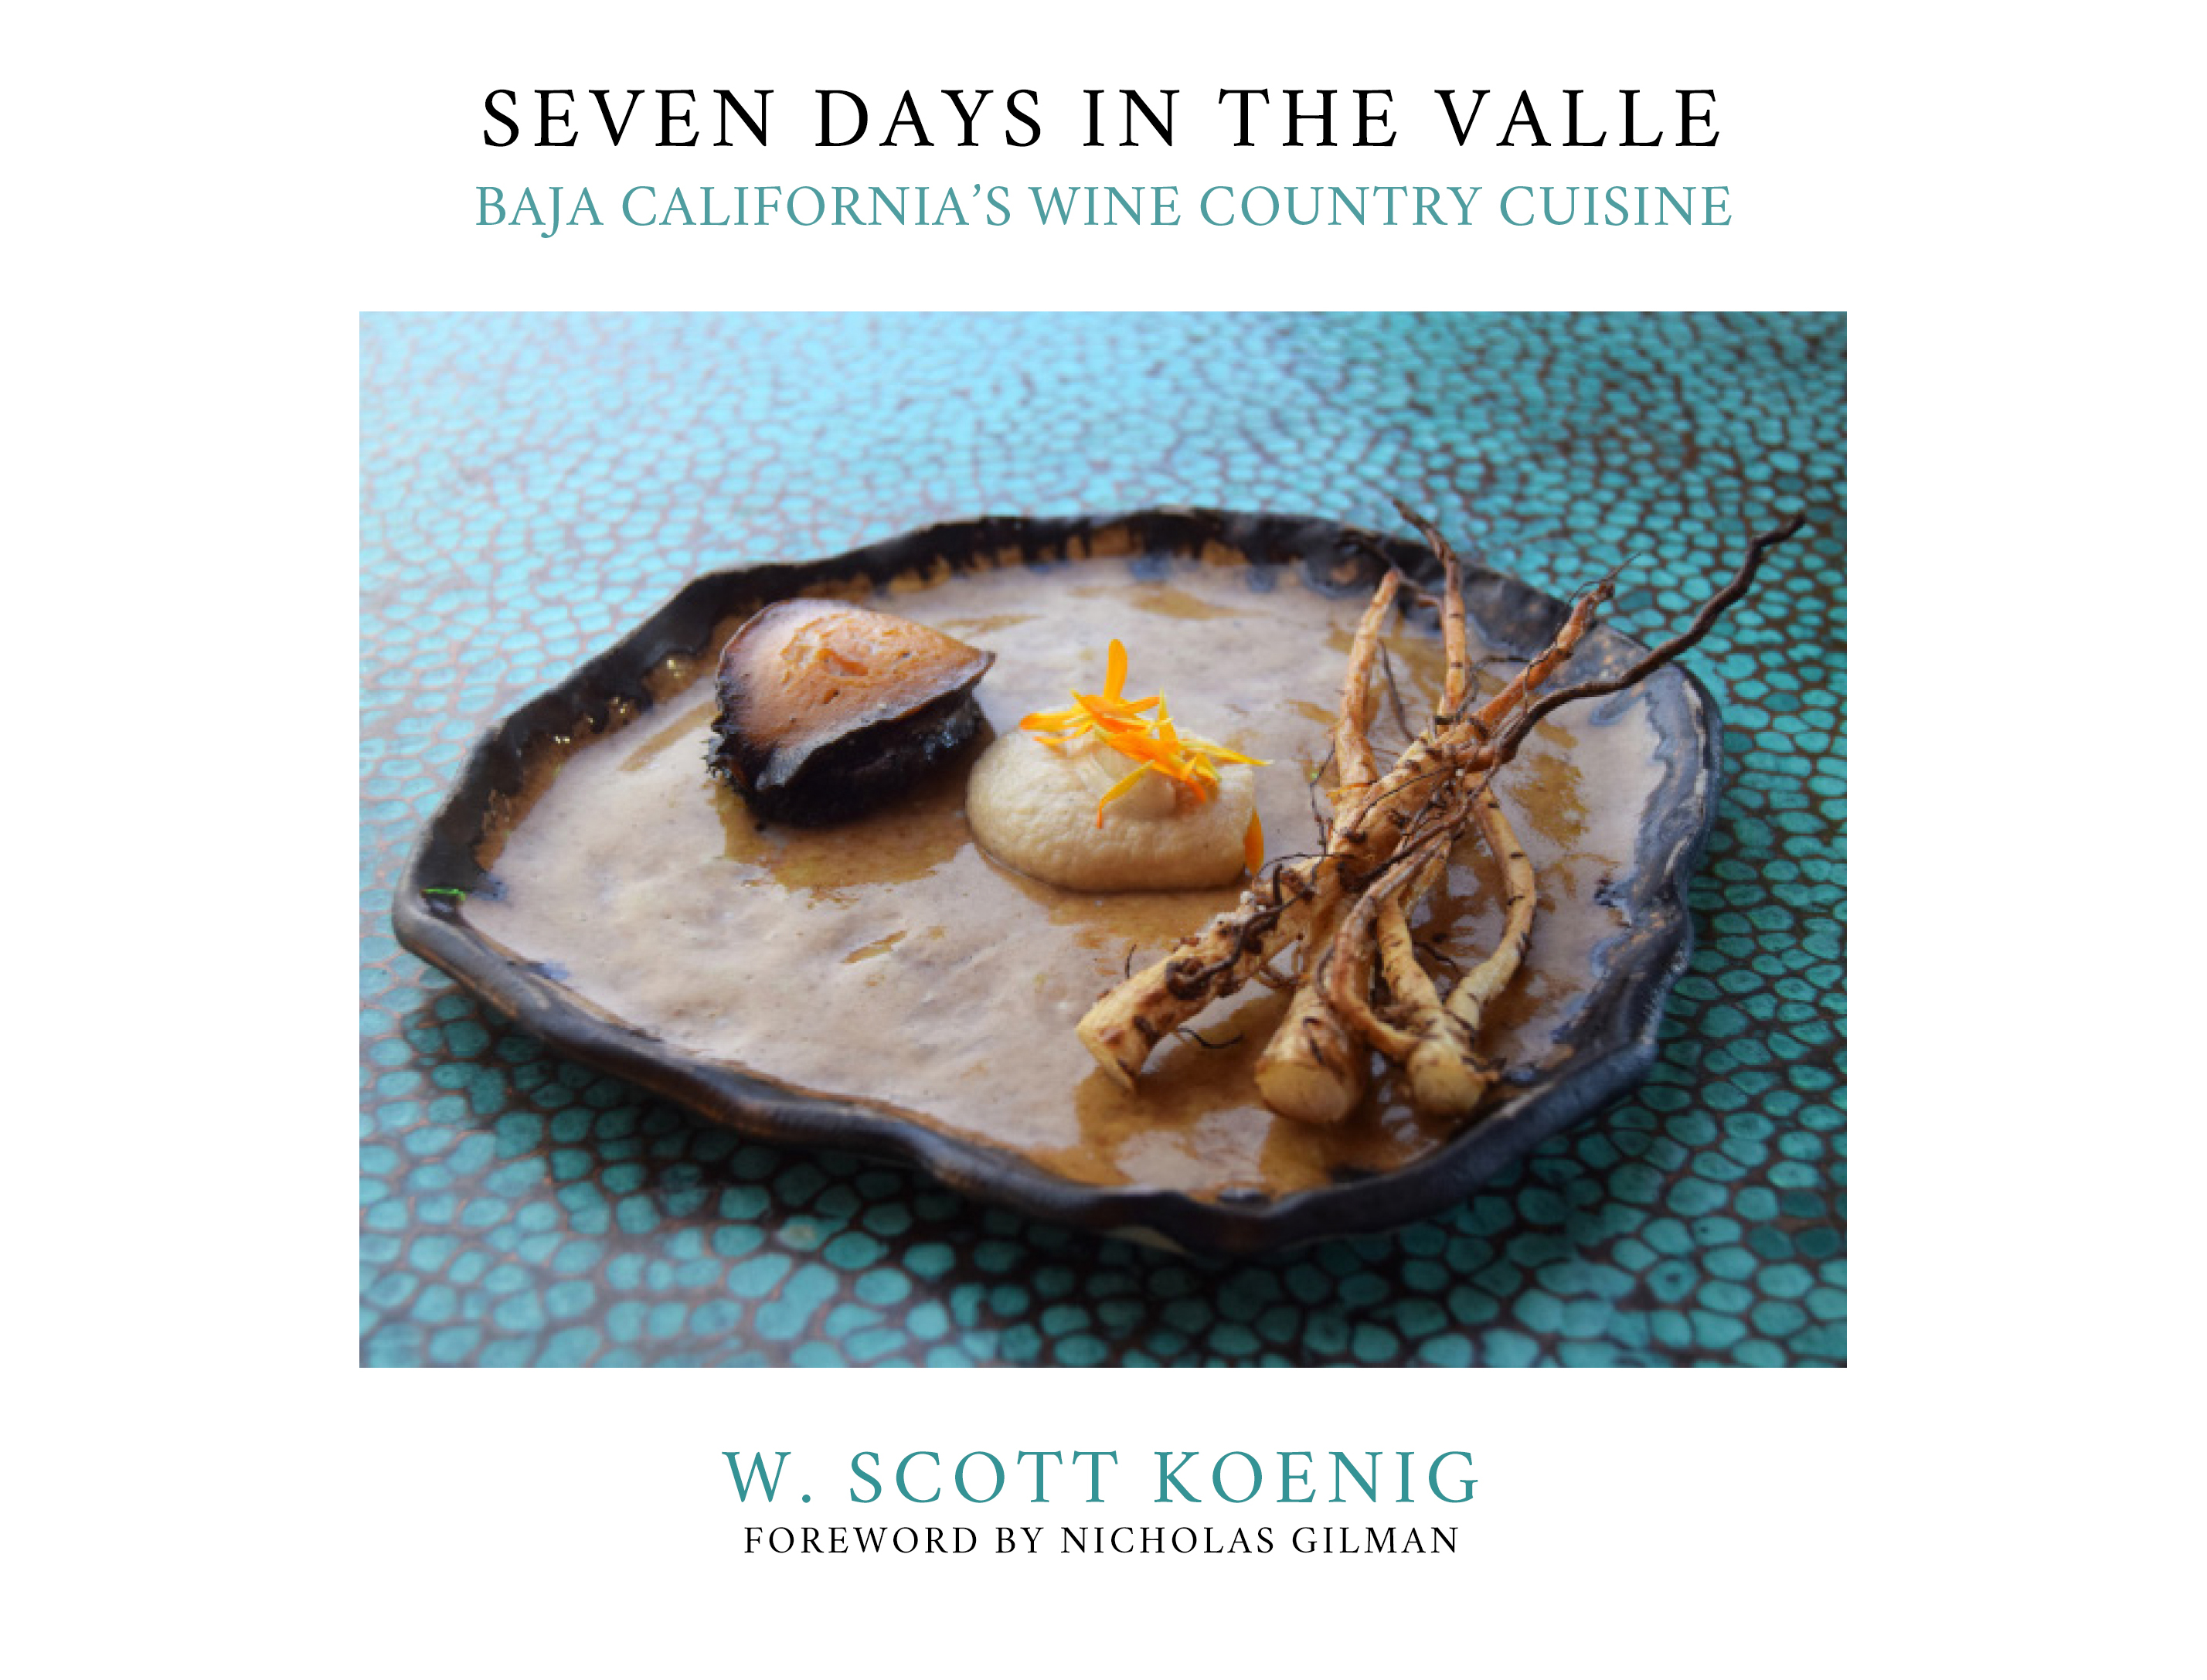 seven days in the valle, valle de guadalupe, guadalupe valley, w. scott koenig, valle de guadalupe book